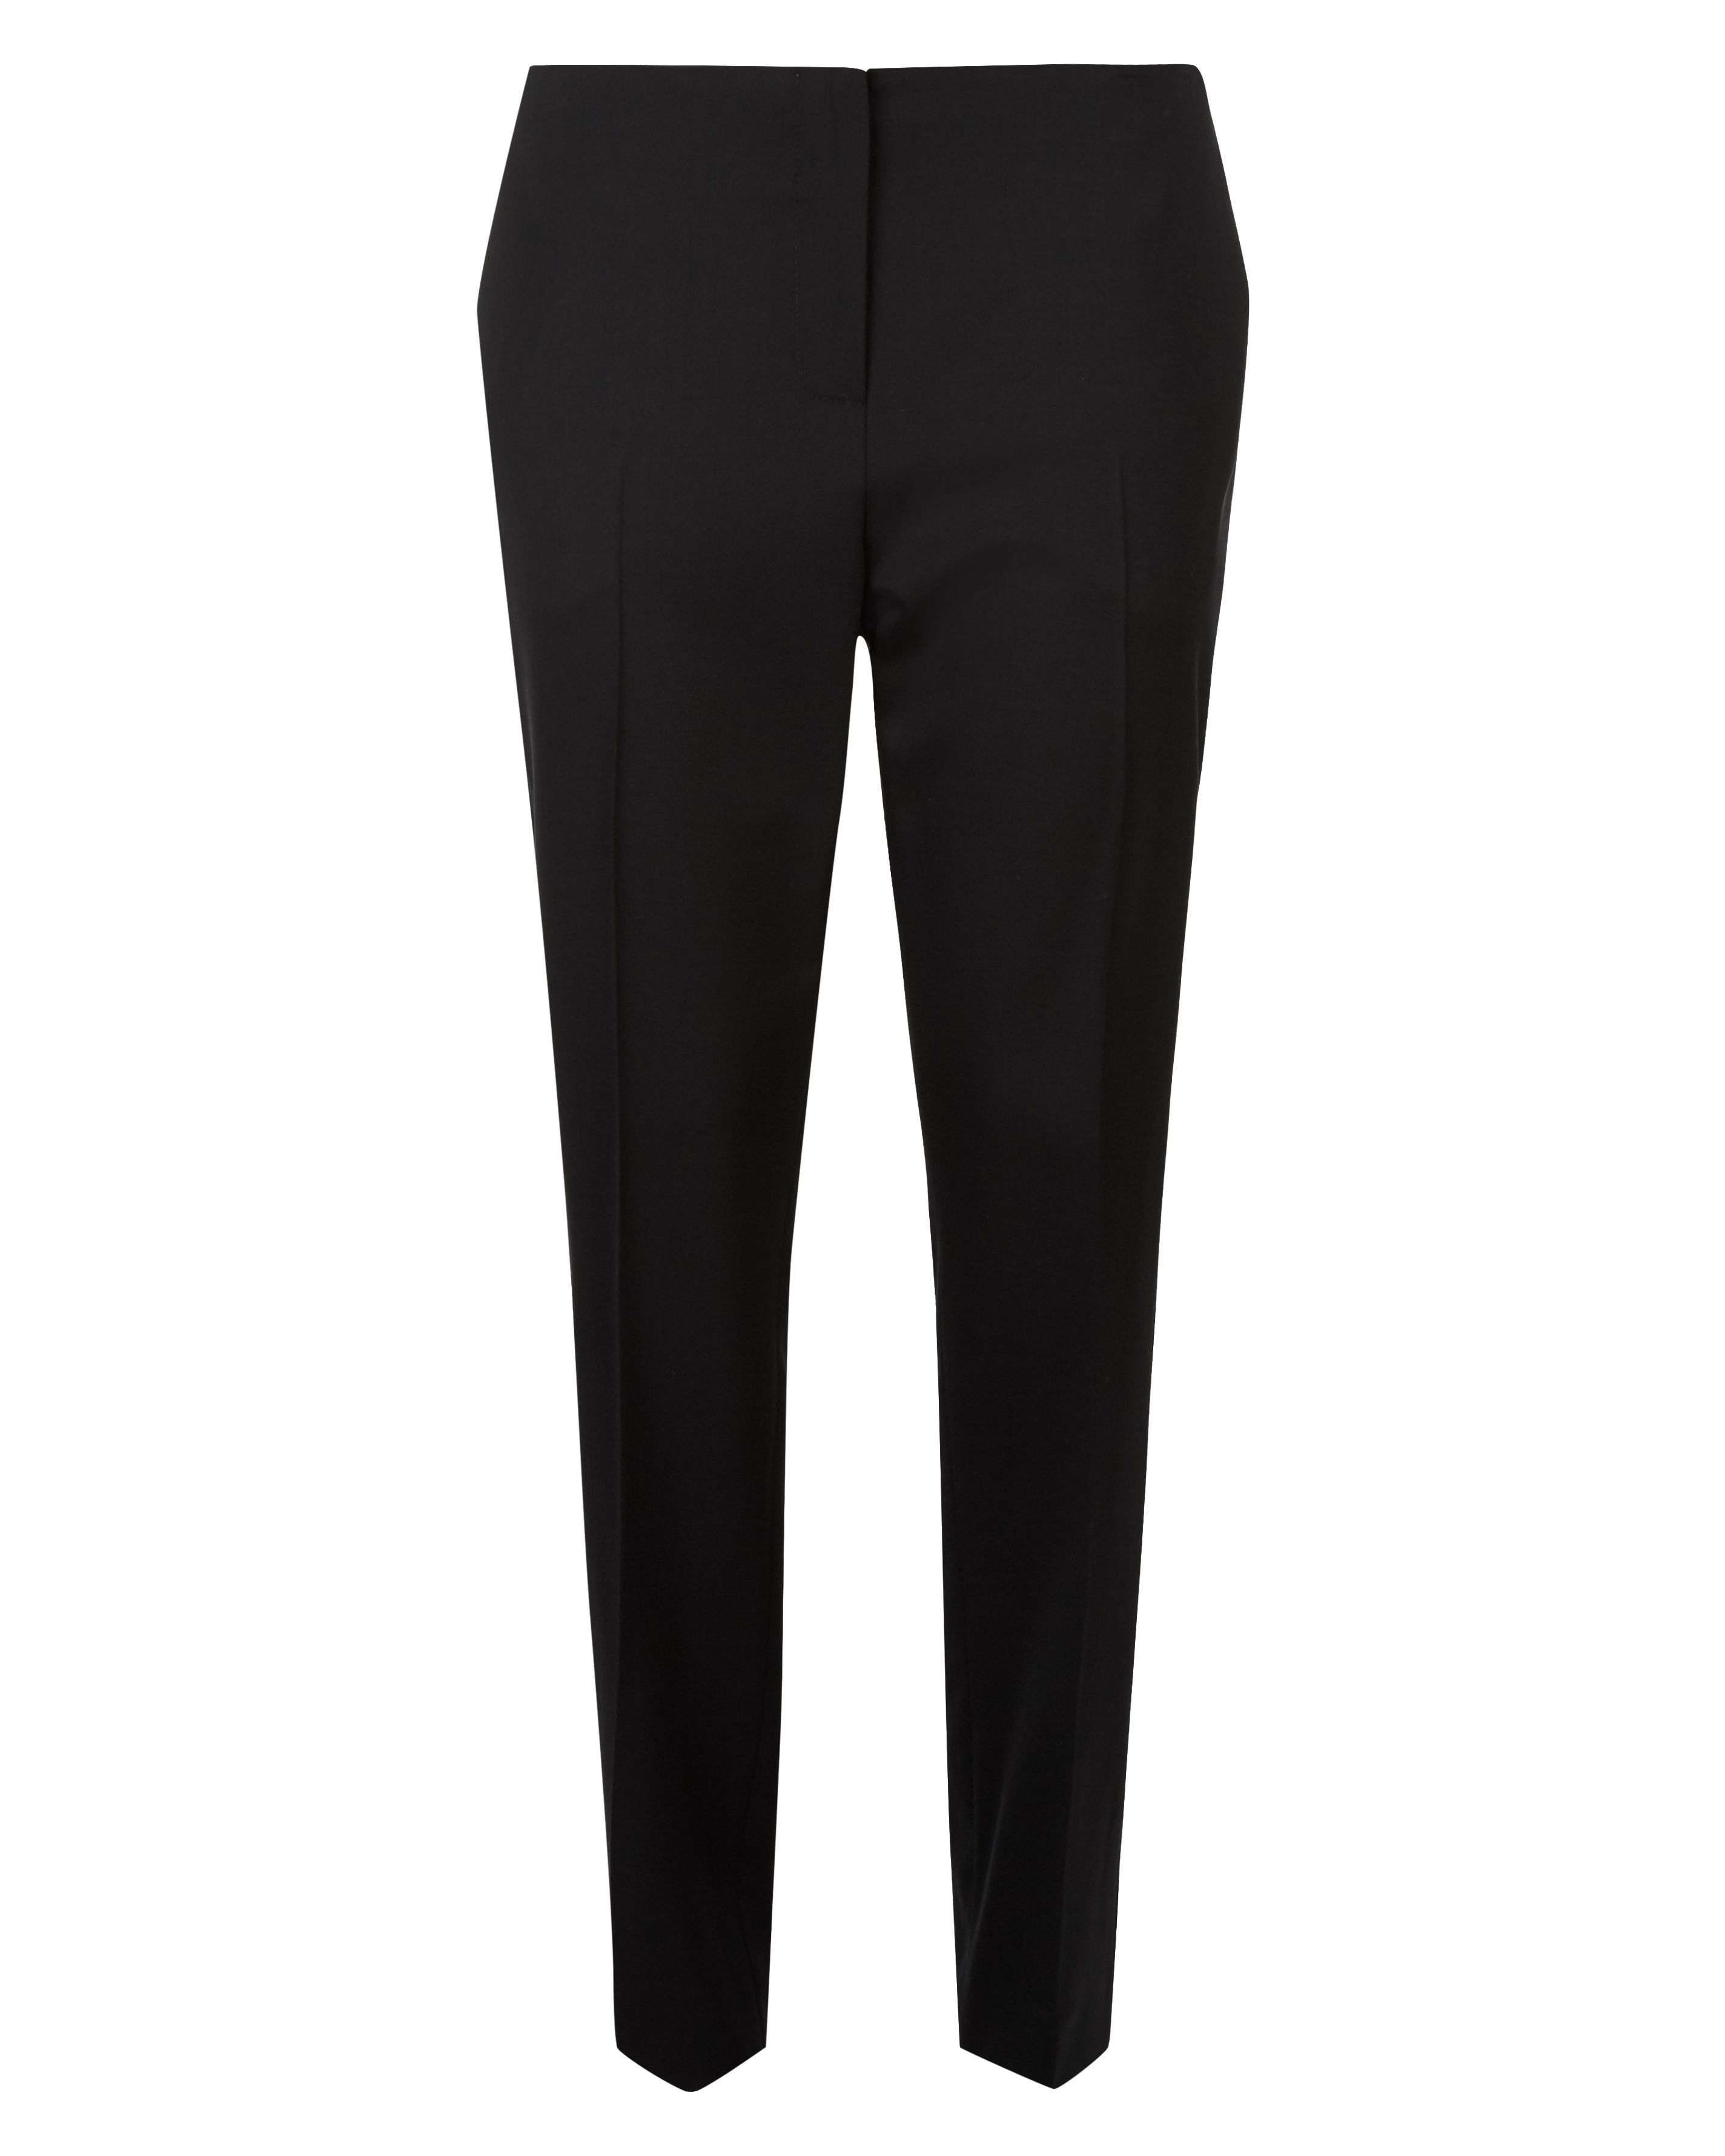 Jaeger Wool Narrow Leg Trousers, Black